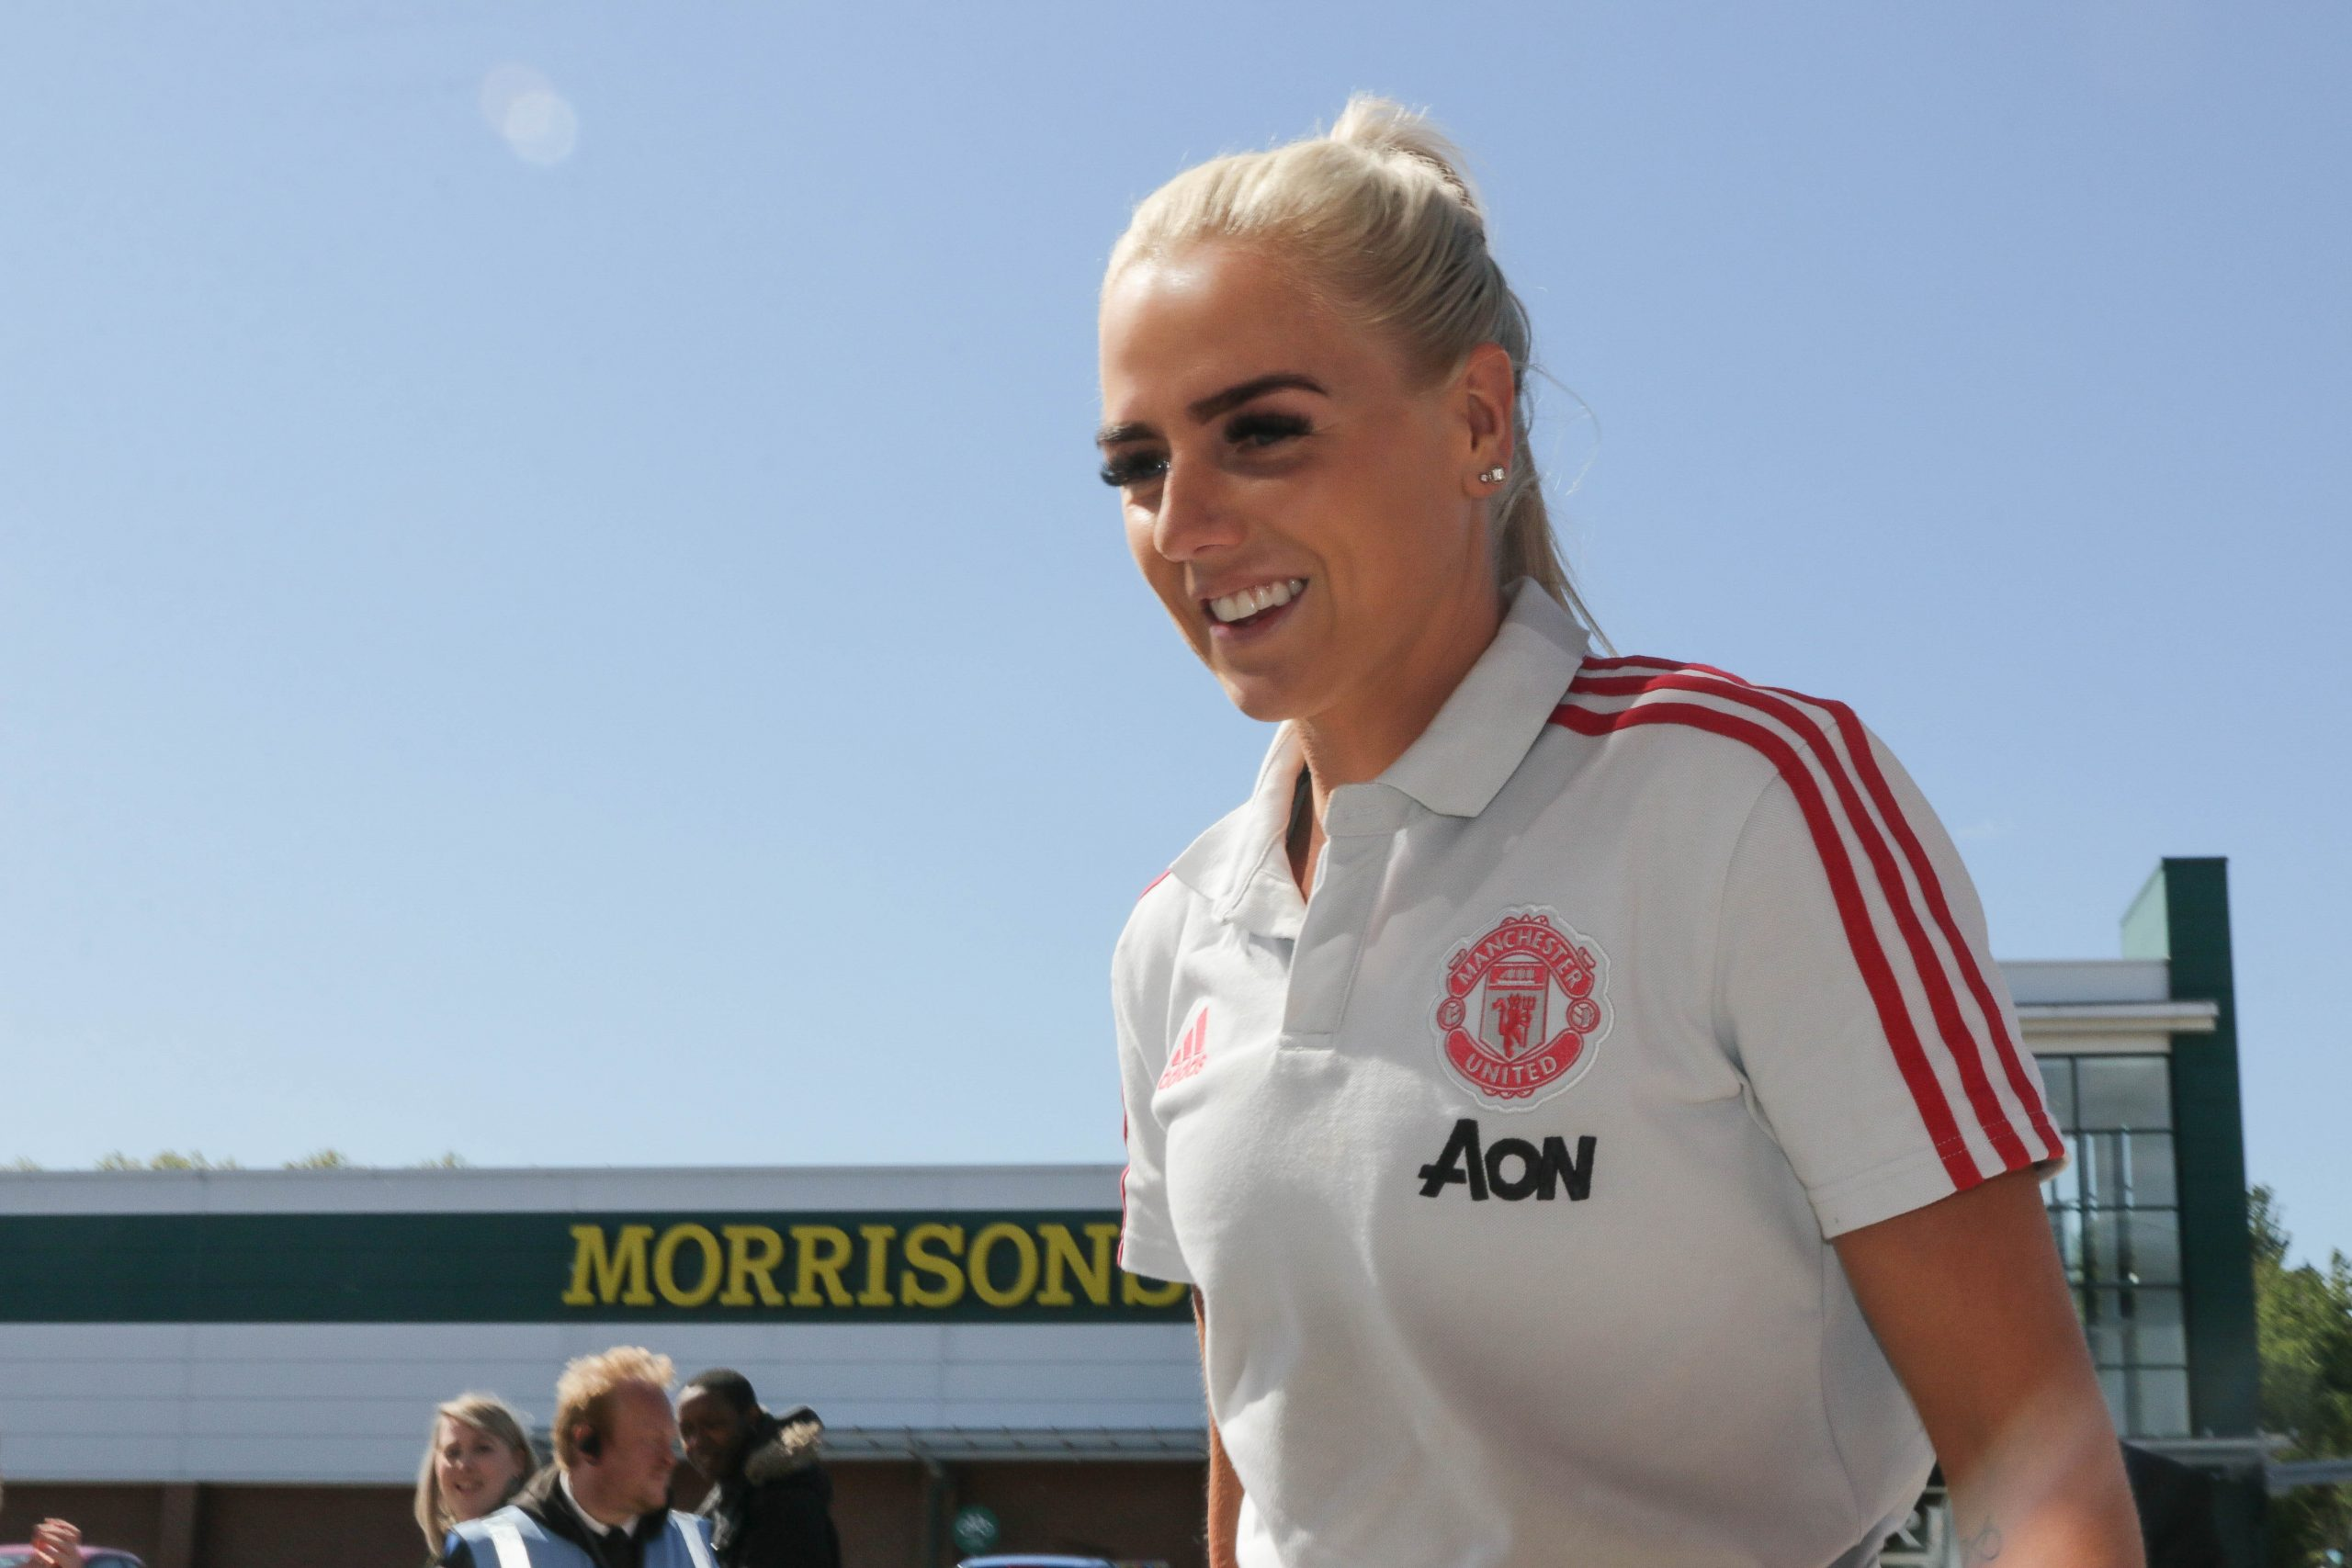 Alex Greenwood, ©James Boyes, https://www.flickr.com/photos/jamesboyes/47061718854/in/album-72157705104832622/